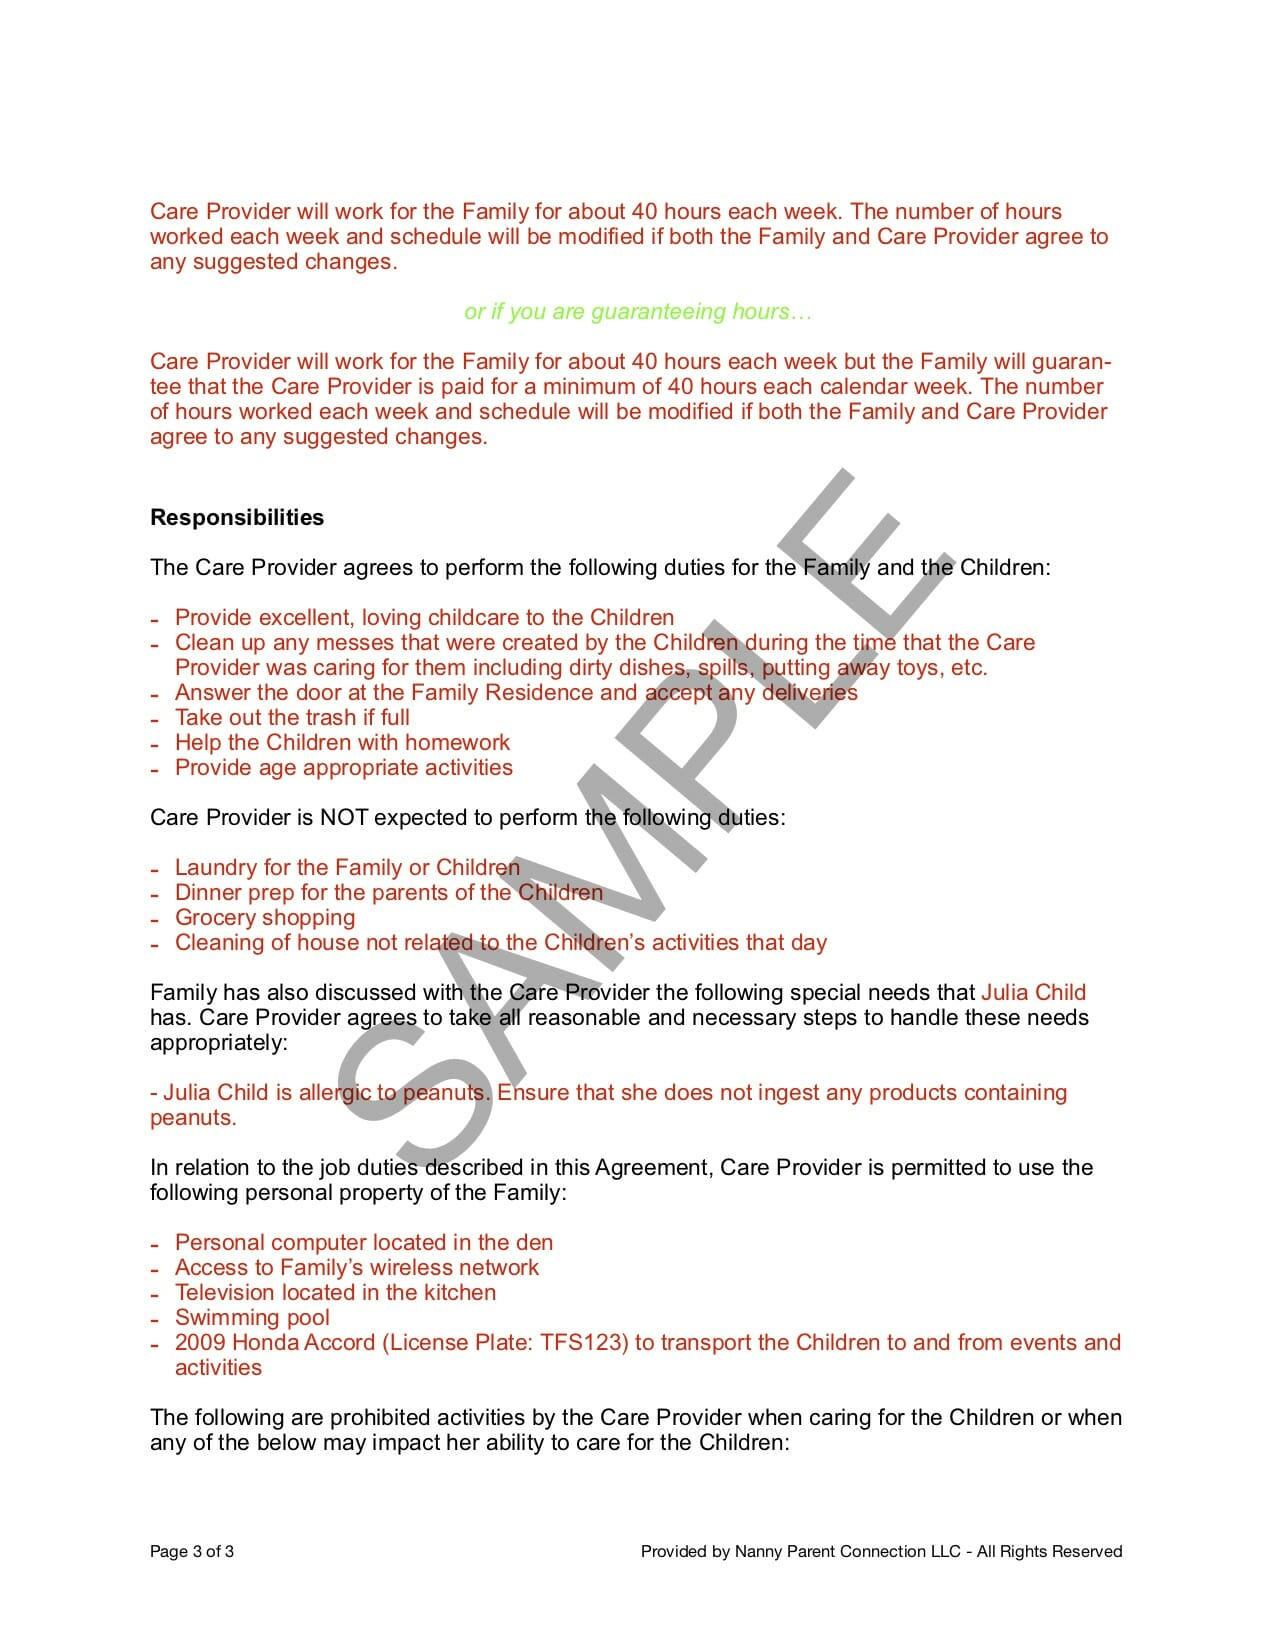 Household Employee Agreement | Nanny Parent Connection